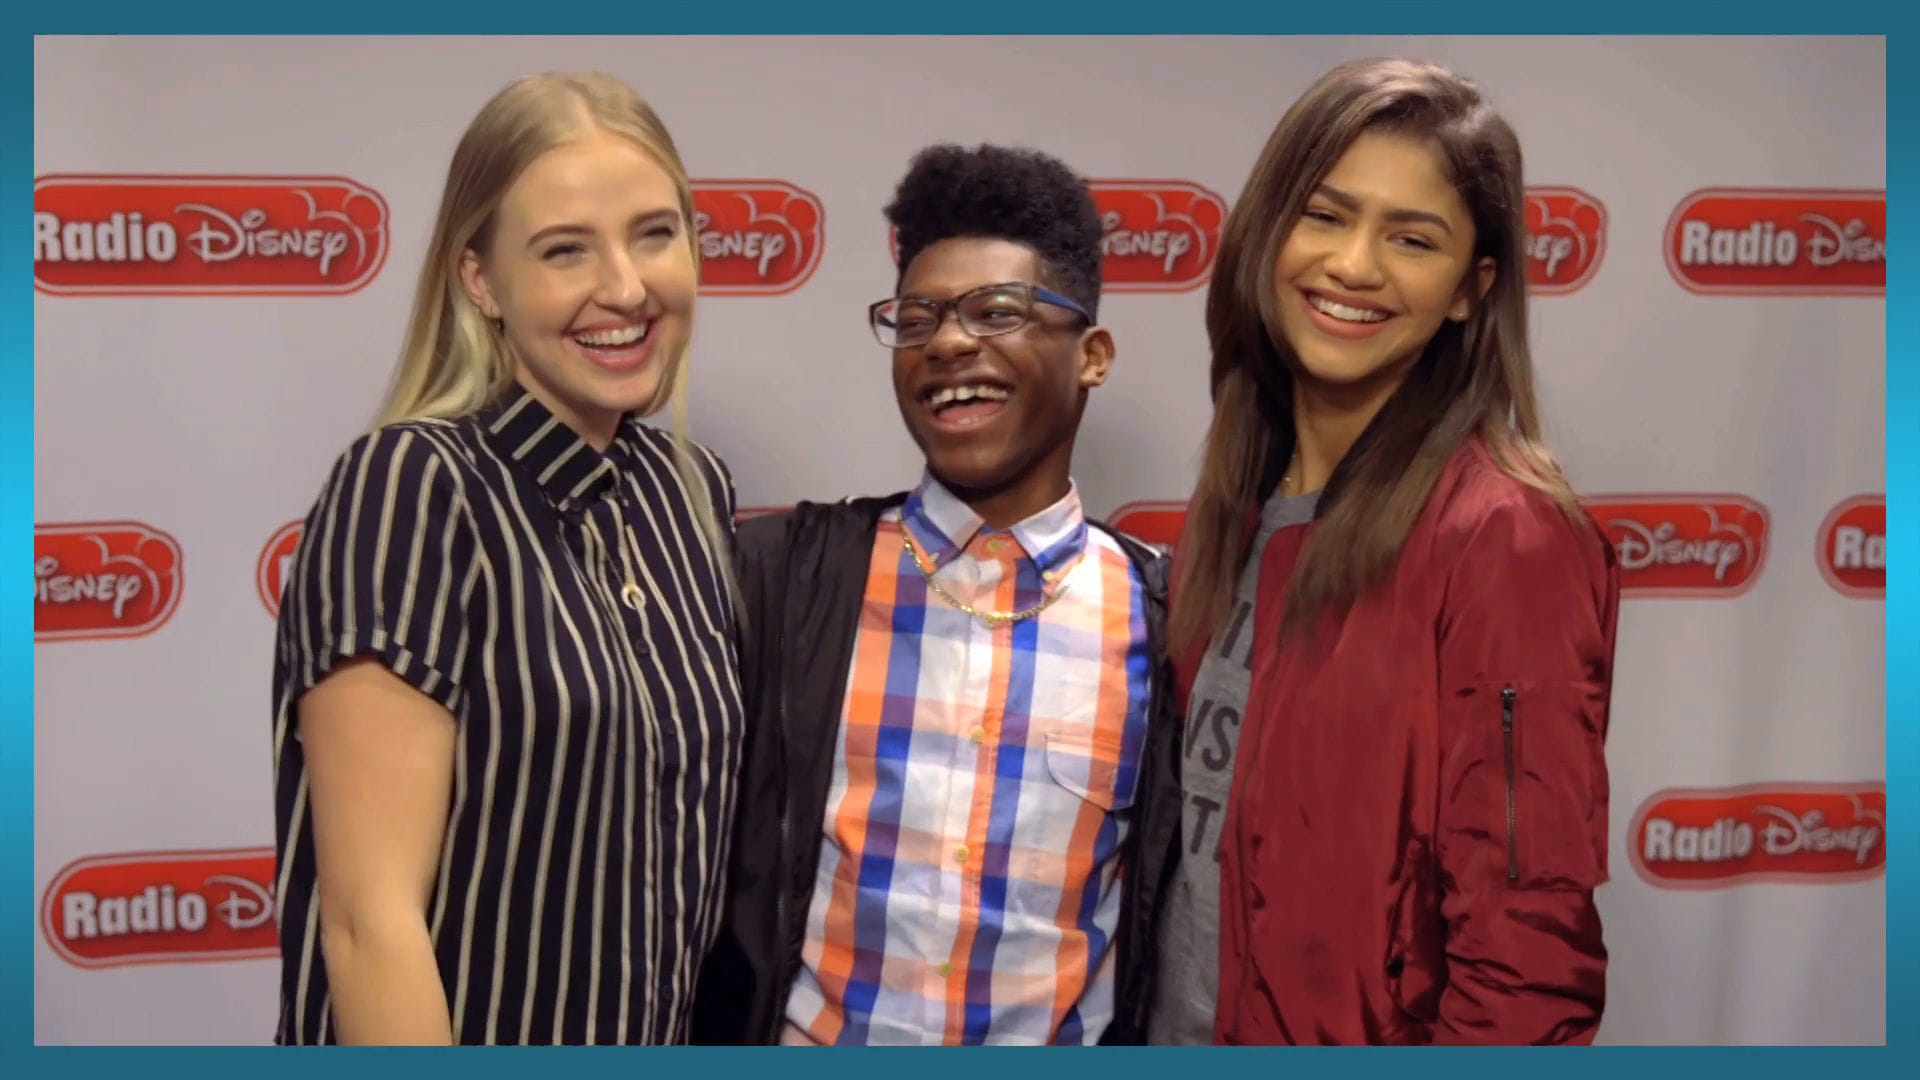 K.C. Undercover Take Over | Radio Disney